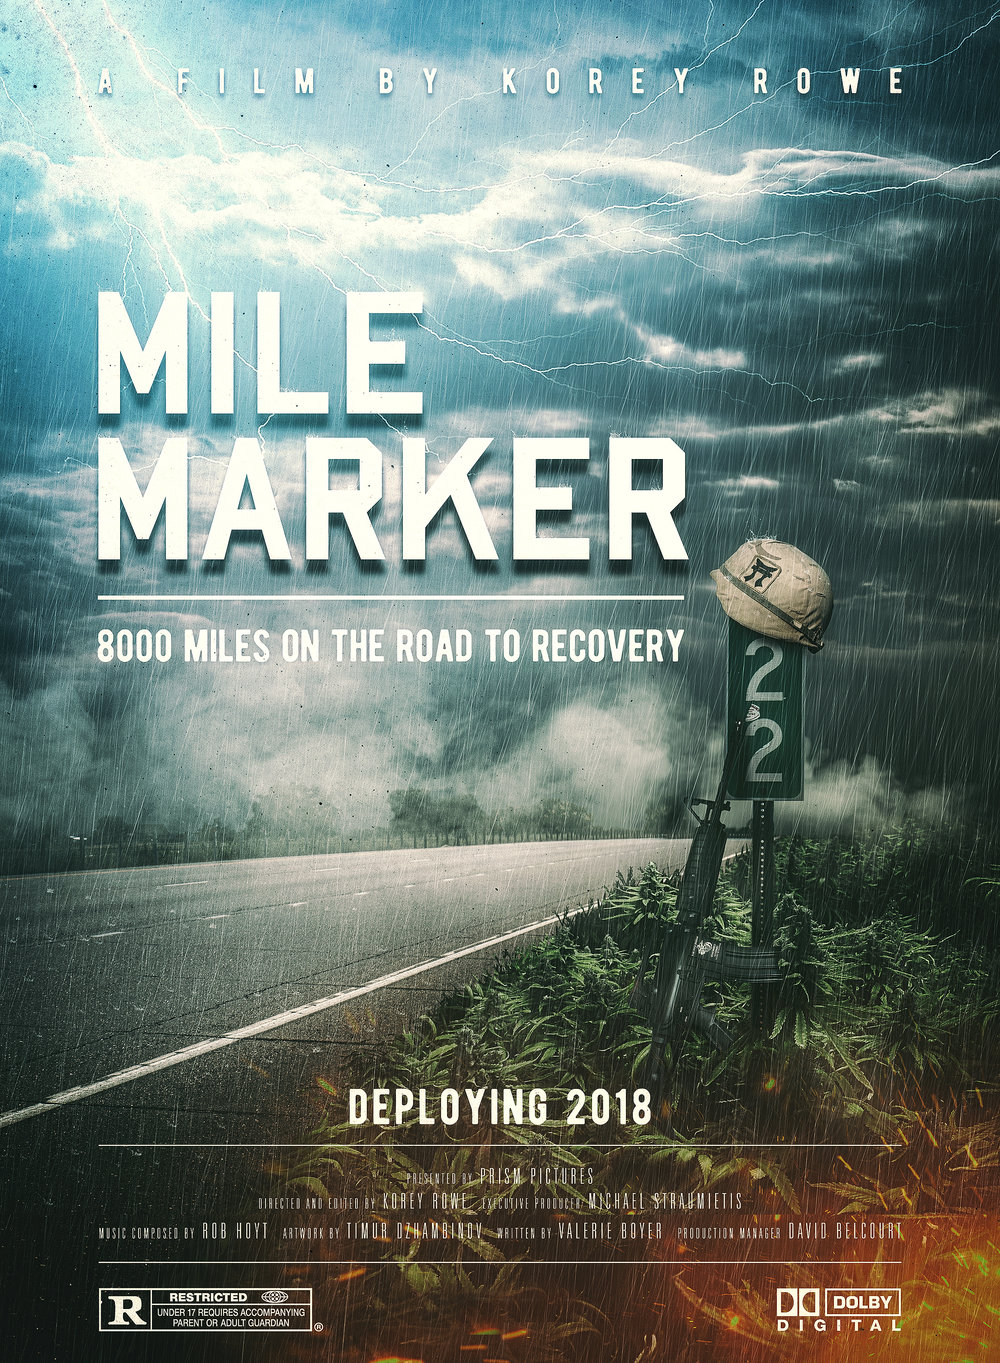 Mile_marker_high_res copy 2.jpg